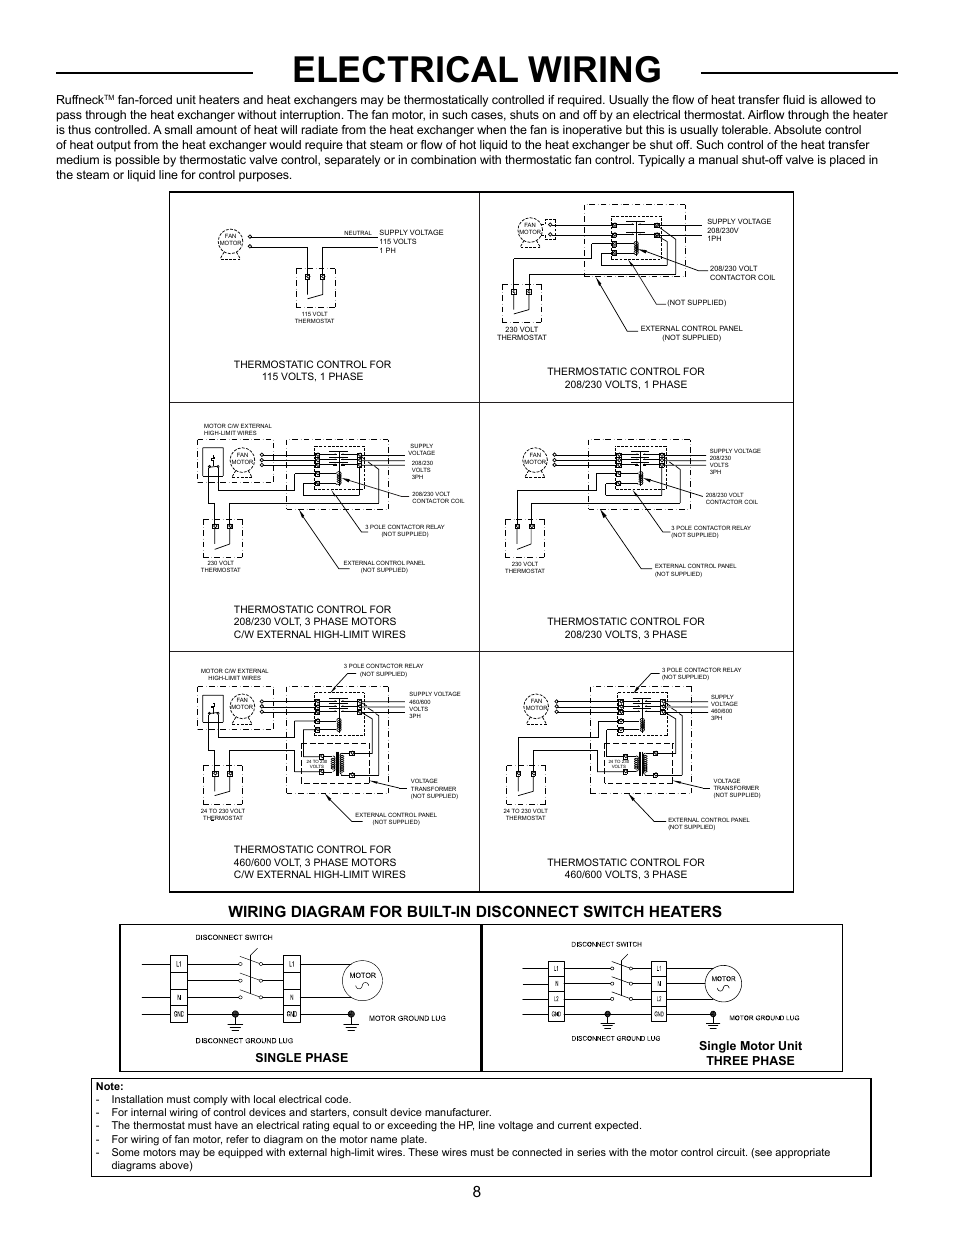 hight resolution of electrical wiring ruffneck single phase single motor unit three phase cci thermal technologies